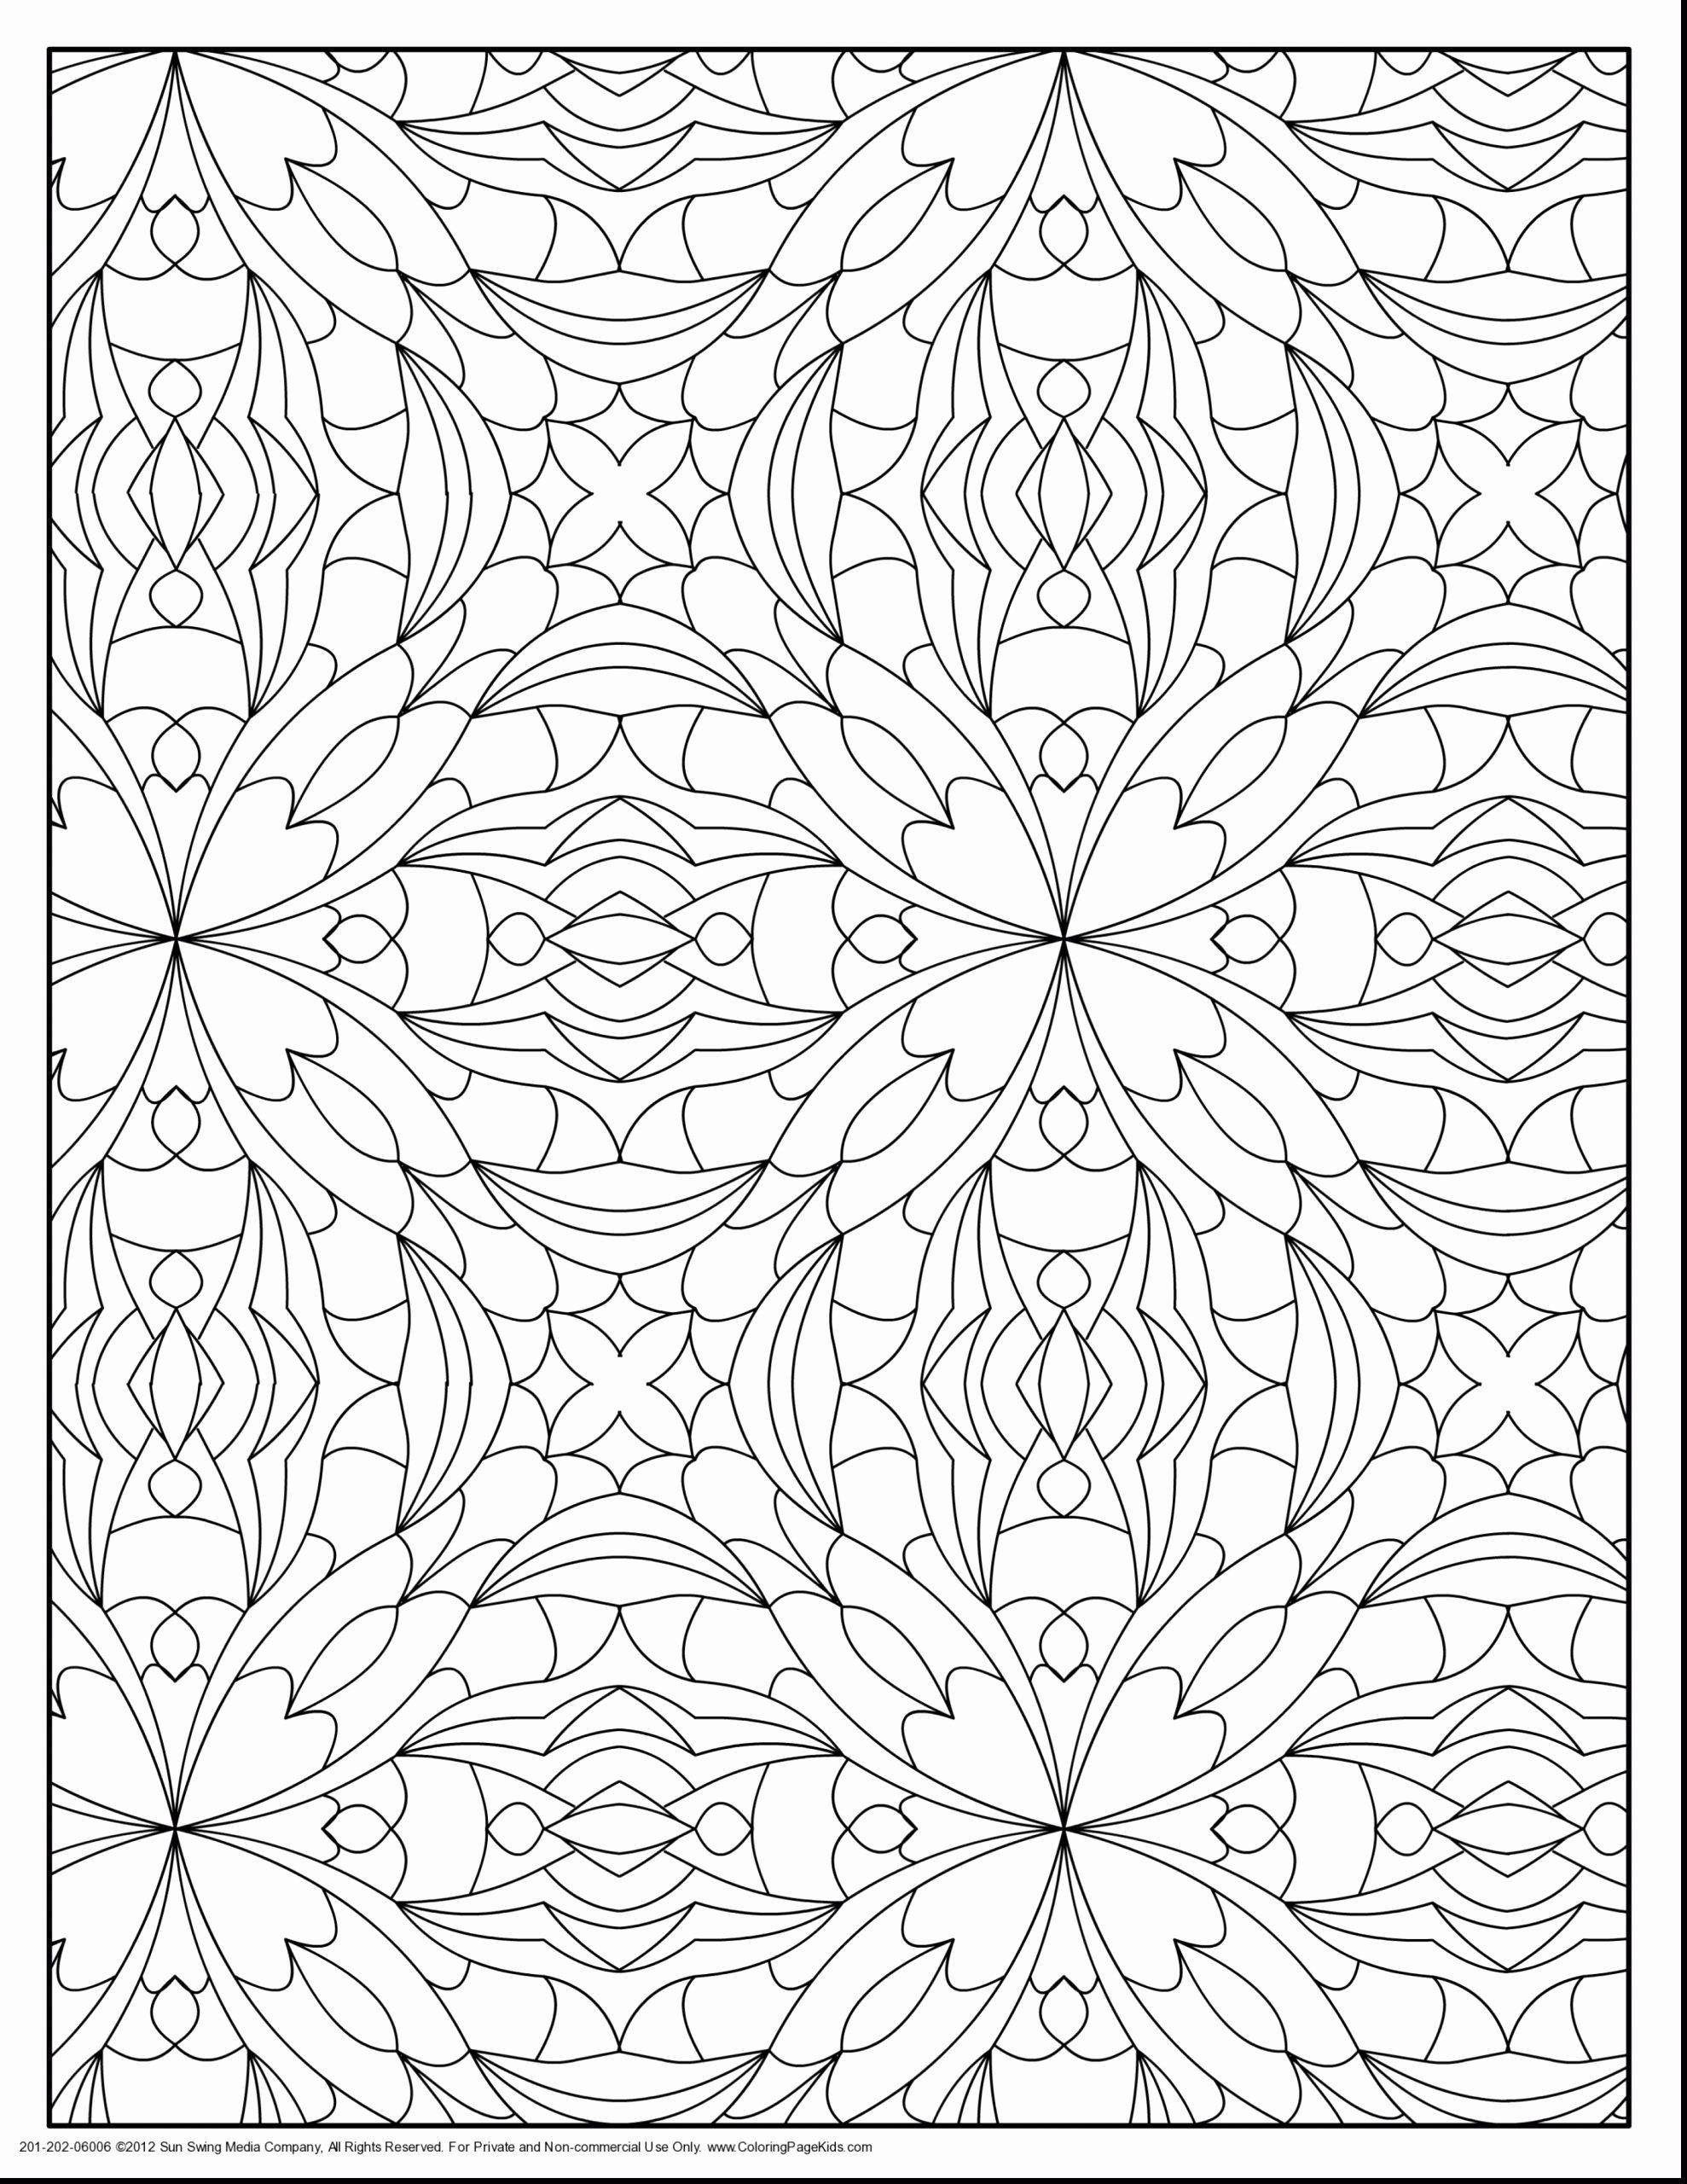 Colorama Coloring Book Commercial Beautiful Coloring Books Pattern Coloring Sheets Colorama Book Pattern Coloring Pages Coloring Books Geometric Coloring Pages